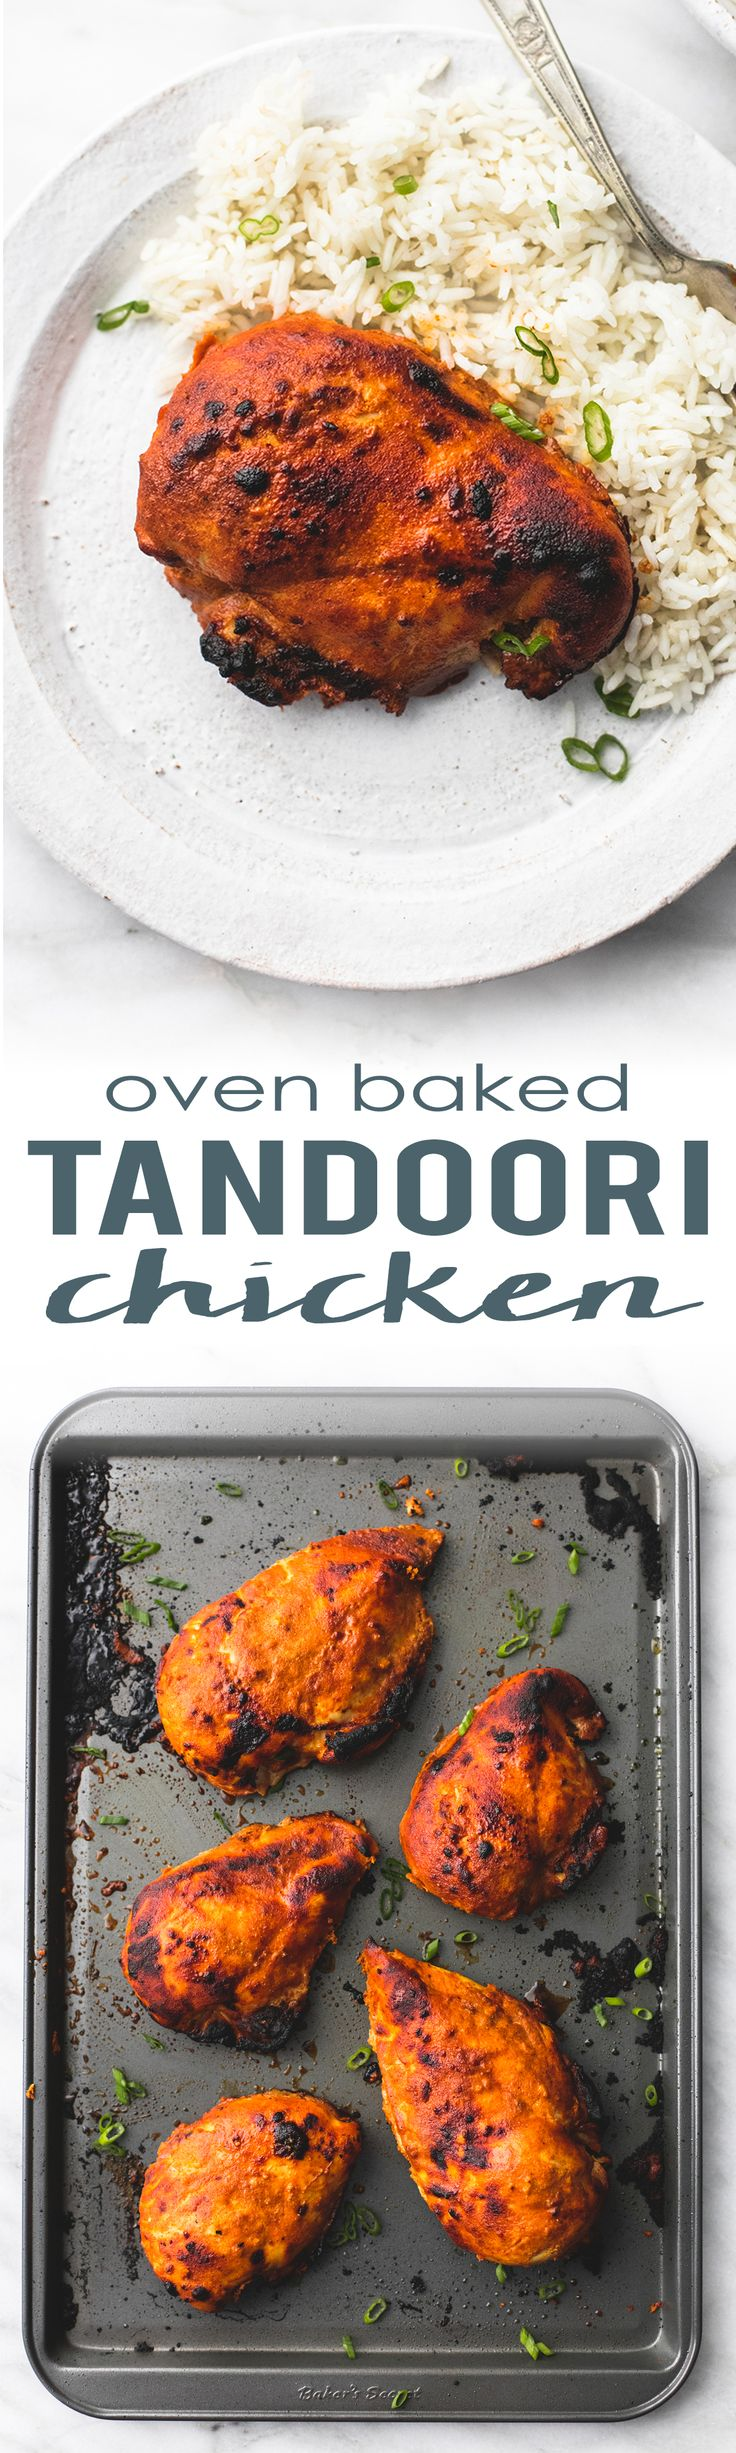 Flavorful and juicy, restaurant-quality oven baked tandoori chicken! Serve with naan and basmati rice for a tasty meal your family will crave! | lecremedelacrumb.com